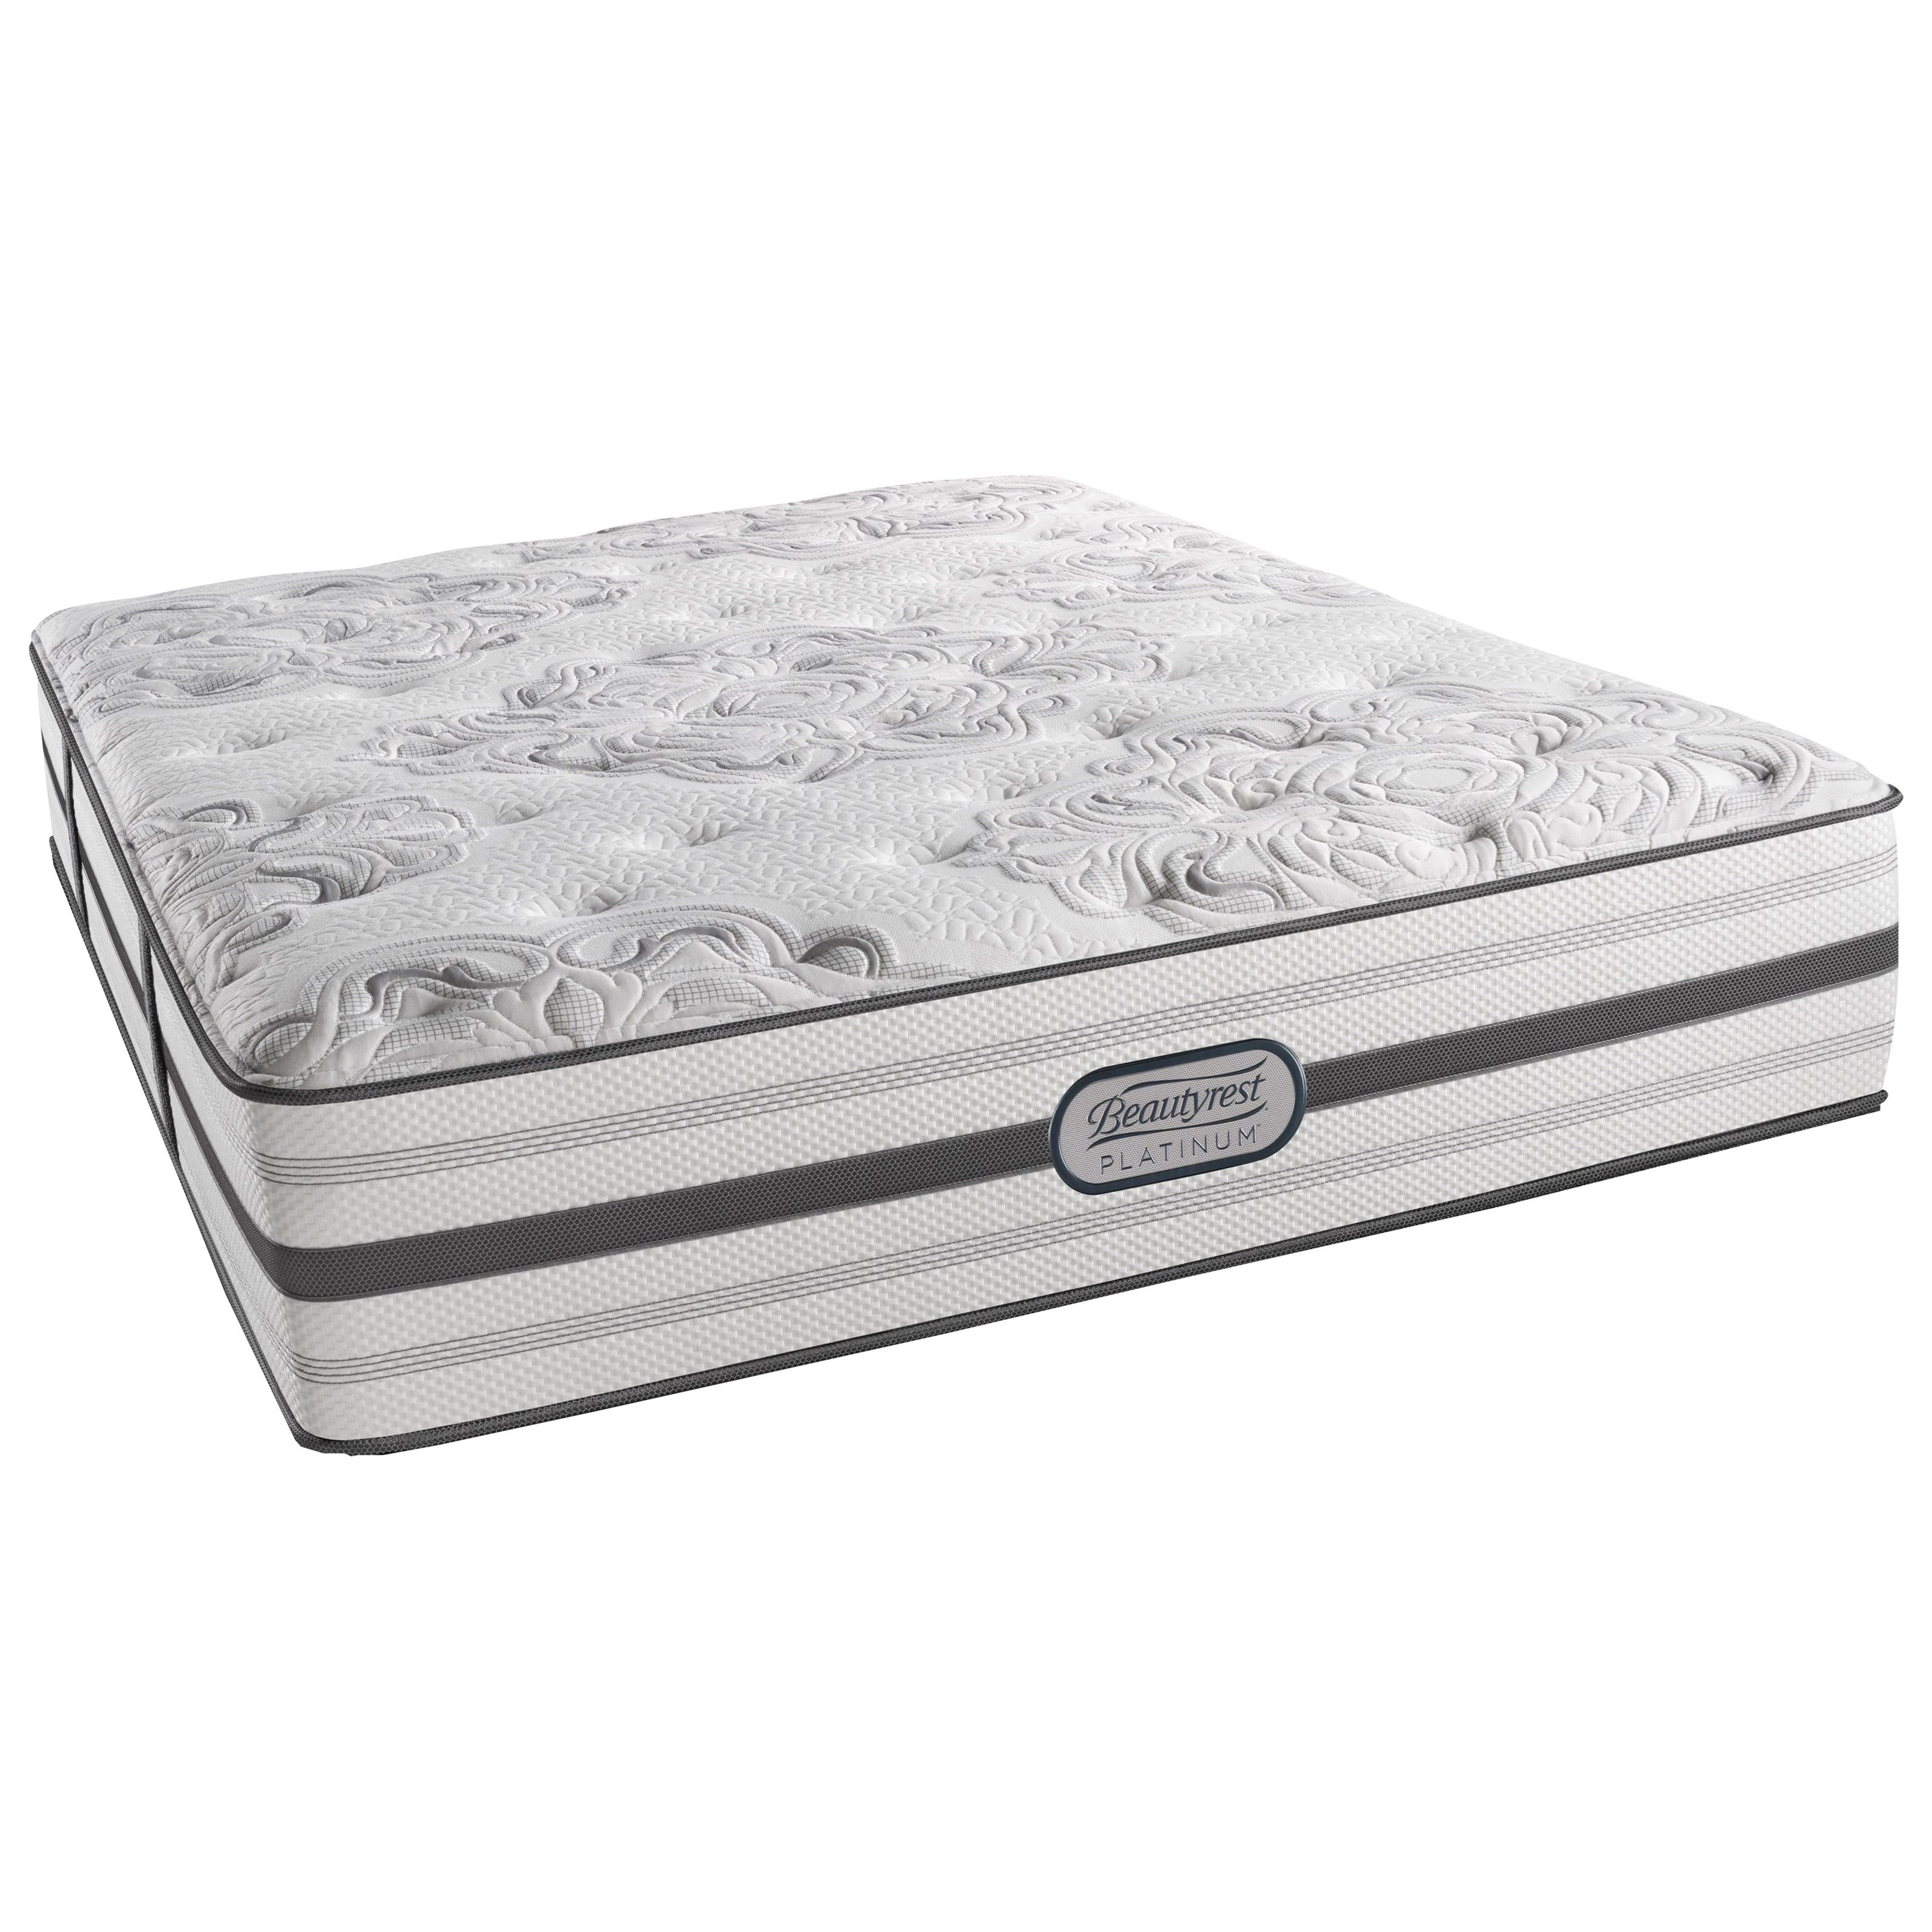 Beautyrest Platinum Brittany King Luxury Firm Mattress - Item Number: LV2LFM-K